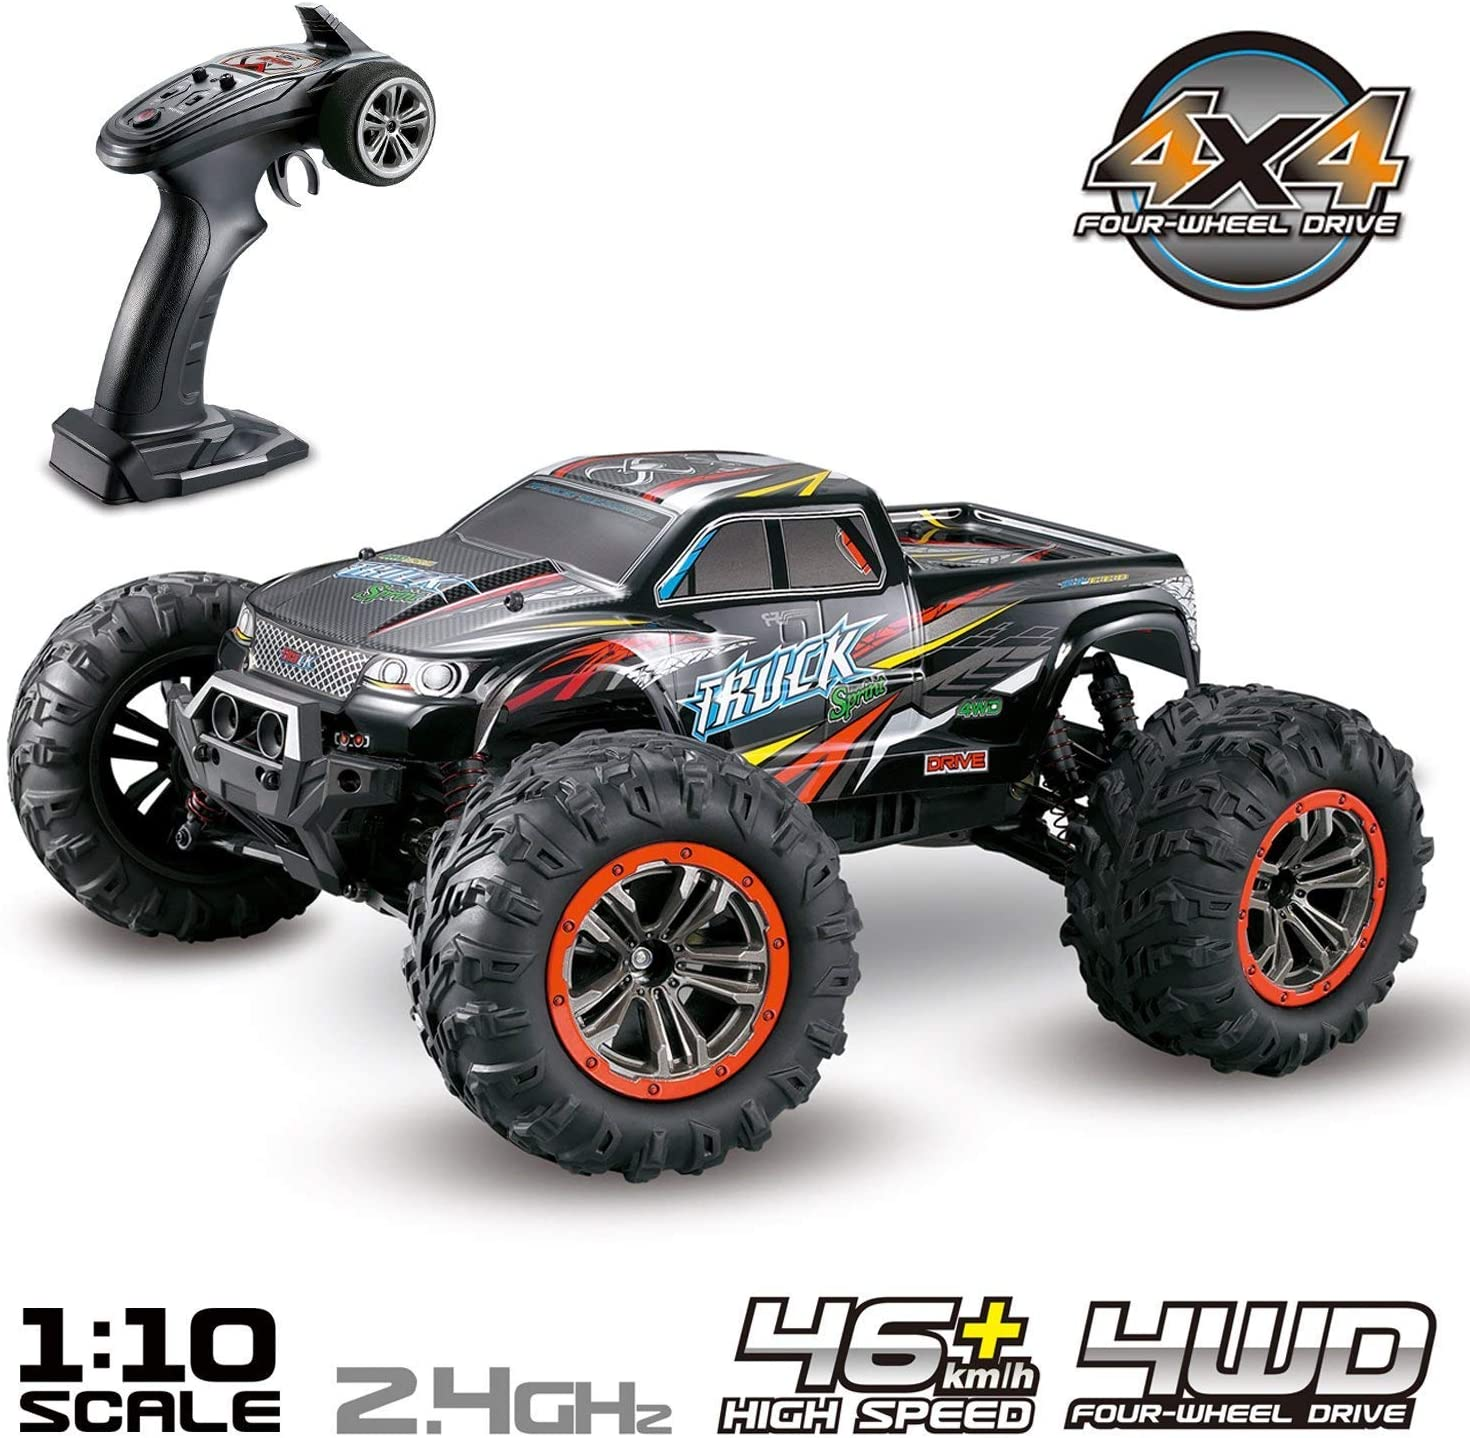 Hosim 9125 Remote Controlled Off-road RC Electric Monster Truck review